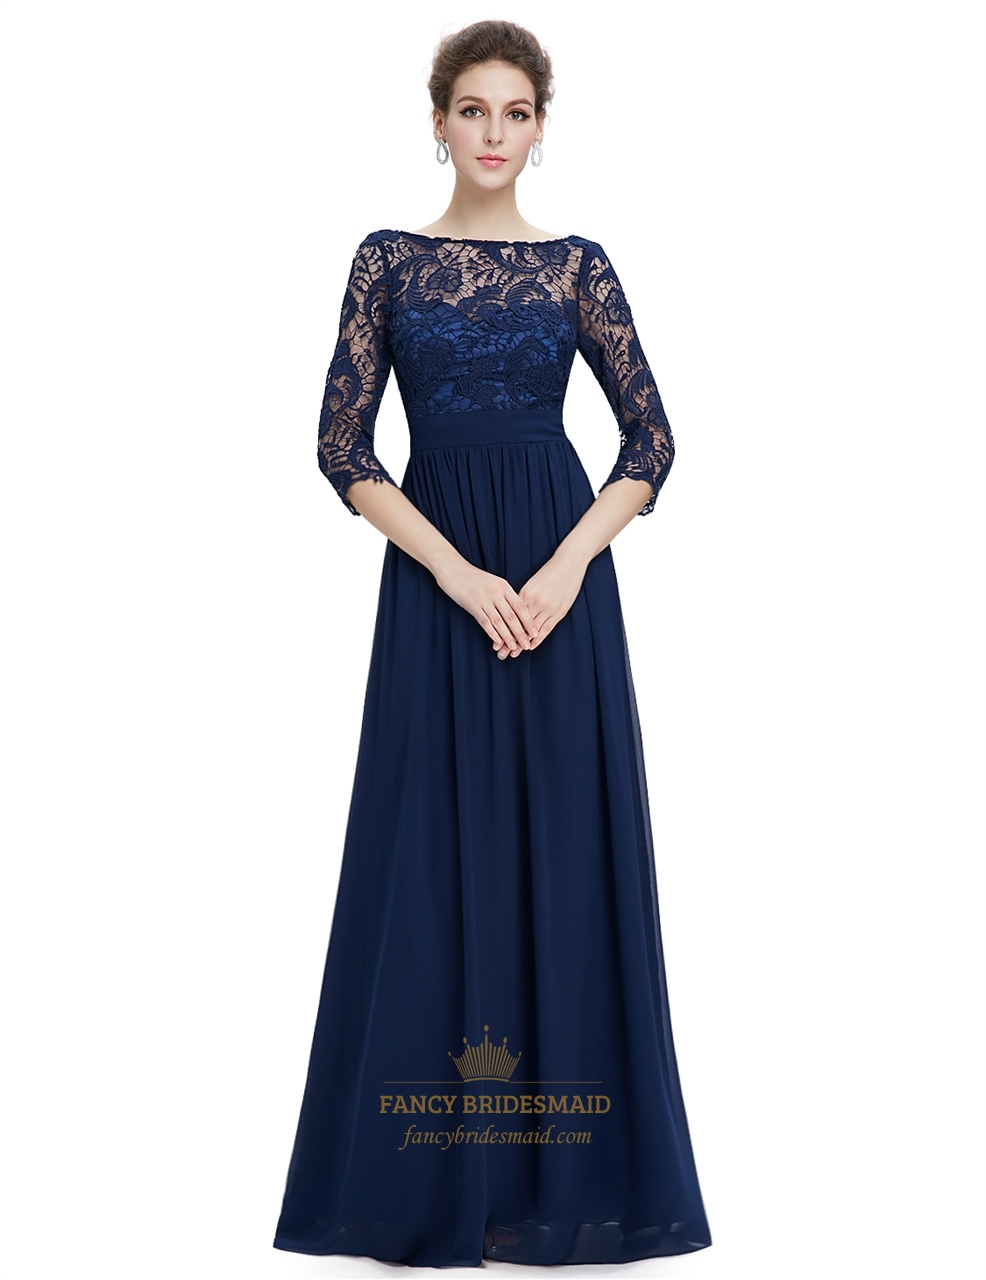 0a0cfbd38ac Elegant Sophisticated Mother Of The Bride Dresses Fancy Bridesmaid. Montage  By Mon Cheri Spring 2016 Style No 116944 Eveninggowns ...